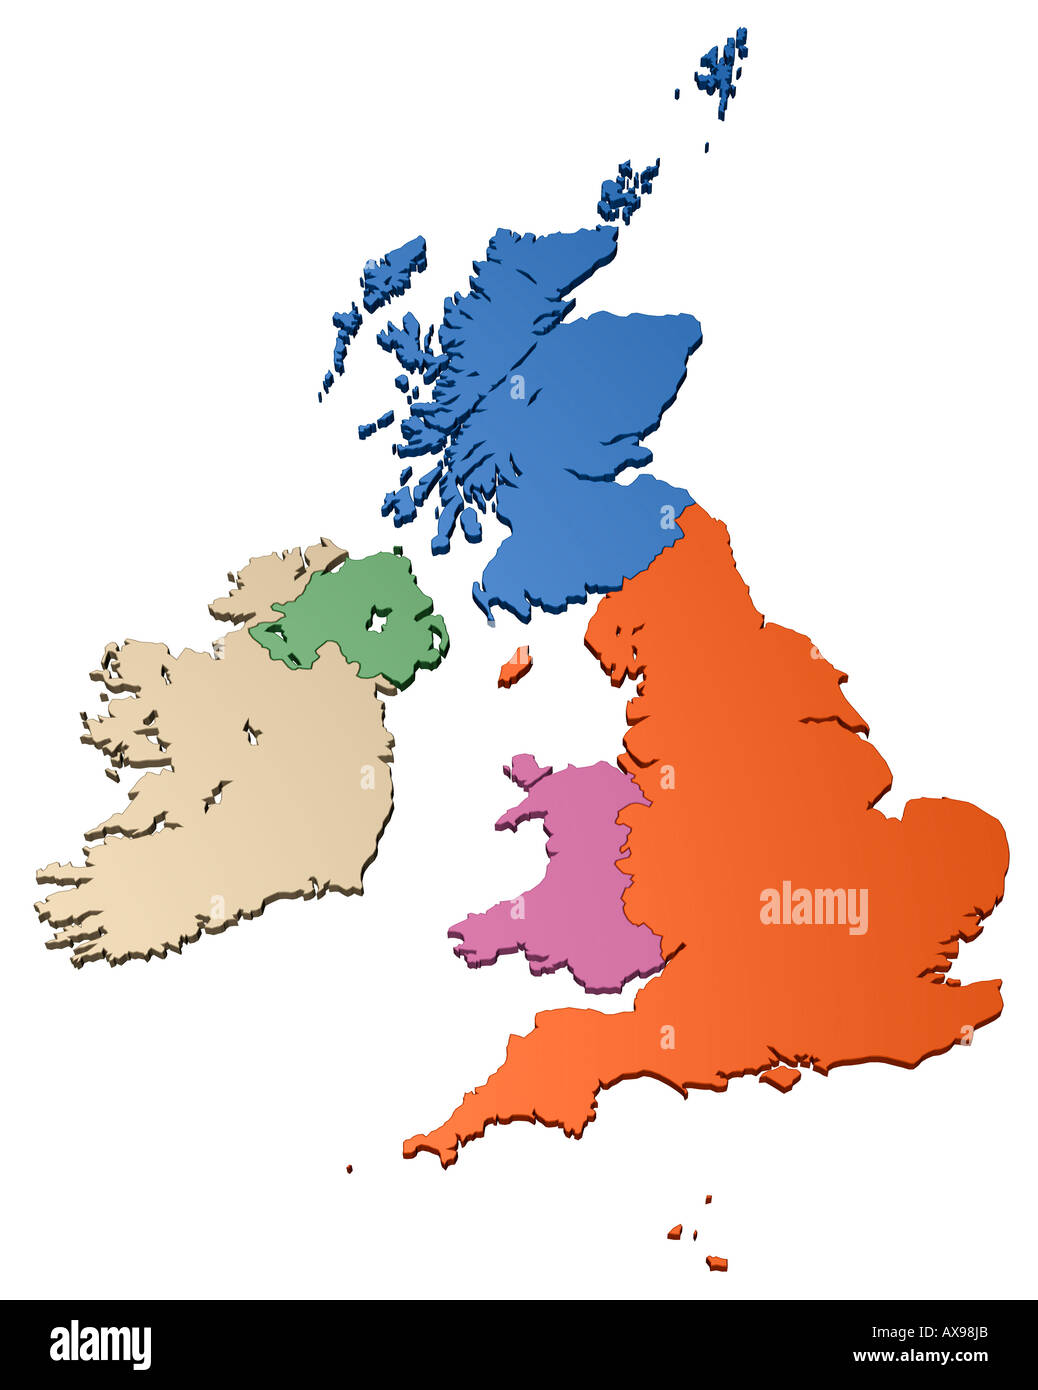 Great Britain Map Stock Photos Great Britain Map Stock Images